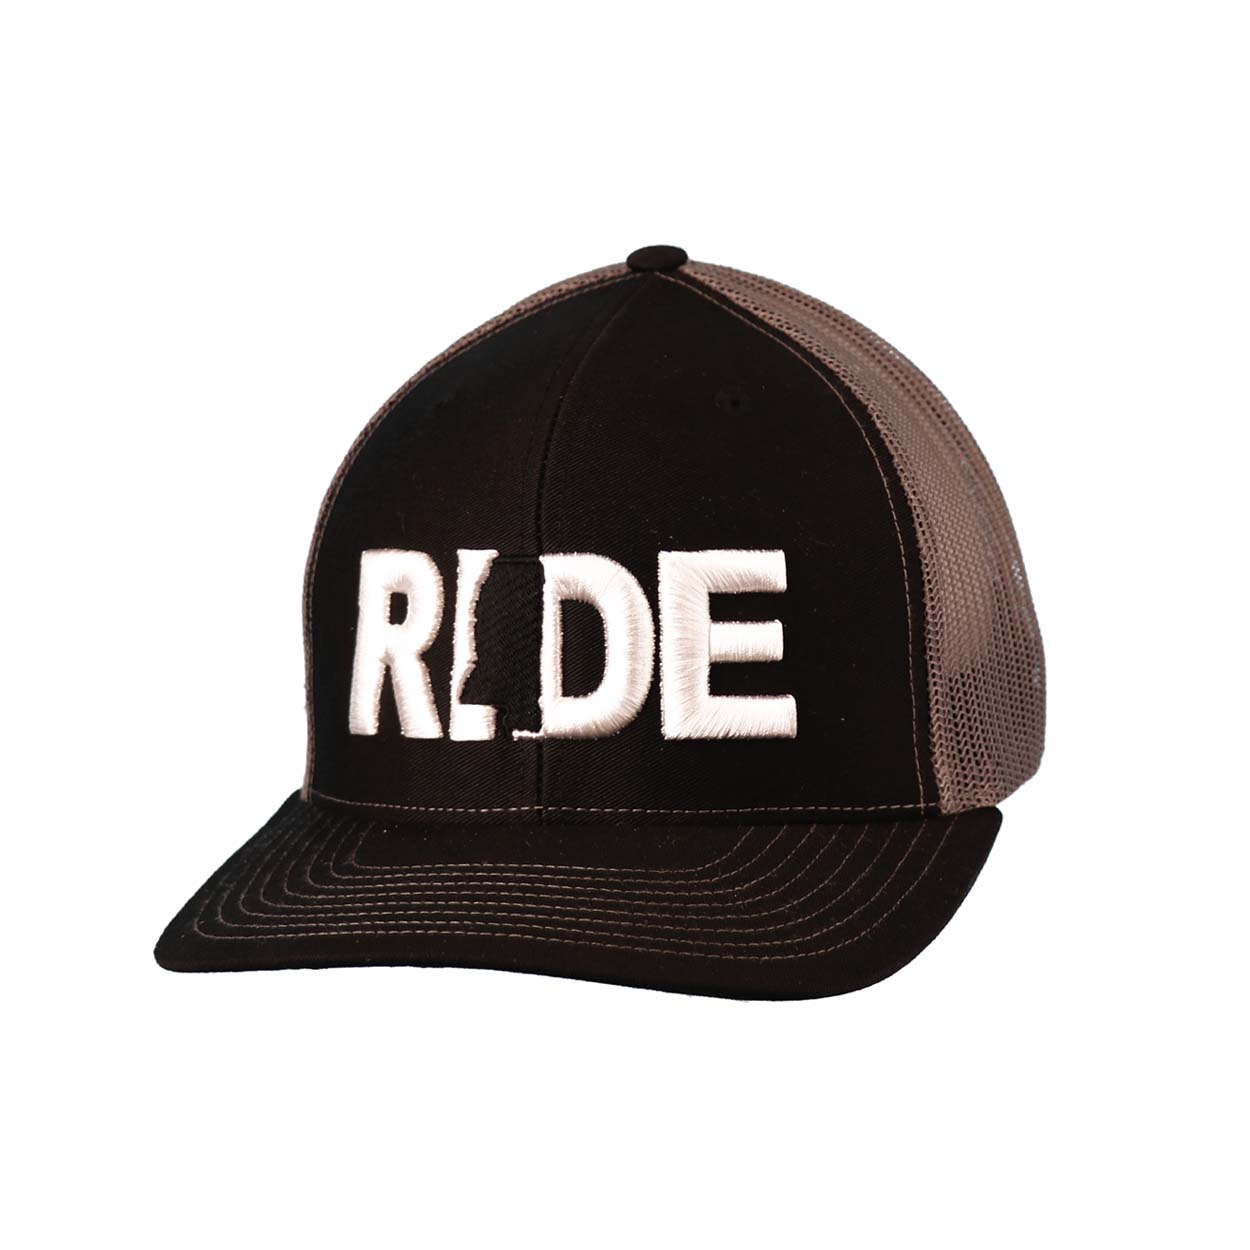 Ride Mississippi Classic Embroidered Snapback Trucker Hat Black/White